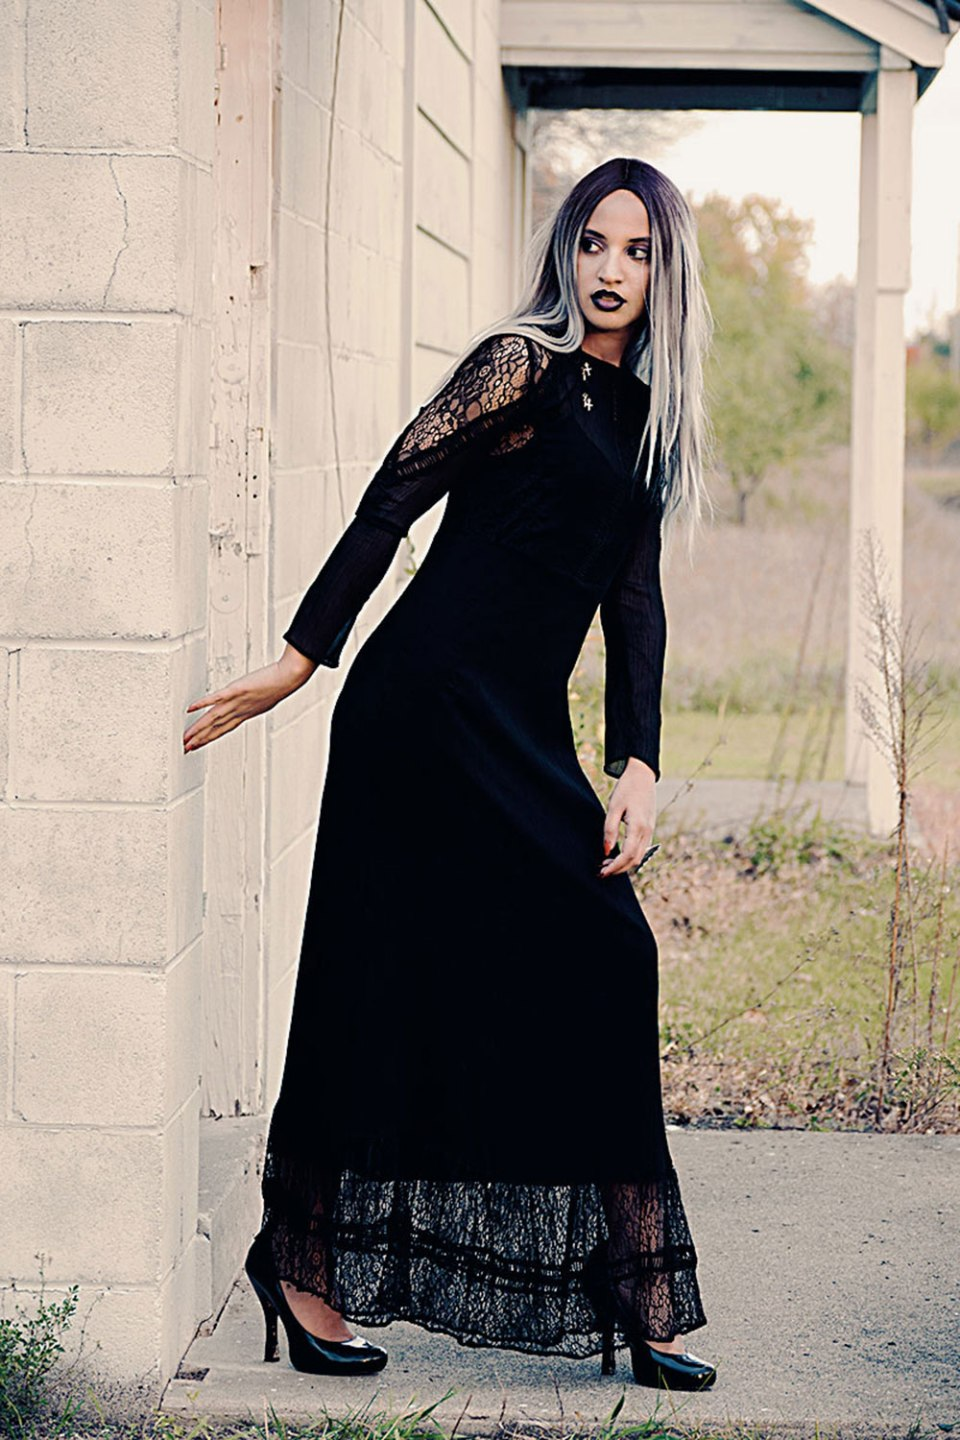 Pastel Goth Morticia Adams Halloween Costume. Photo Credit: Mechelle Avey. Always Uttori